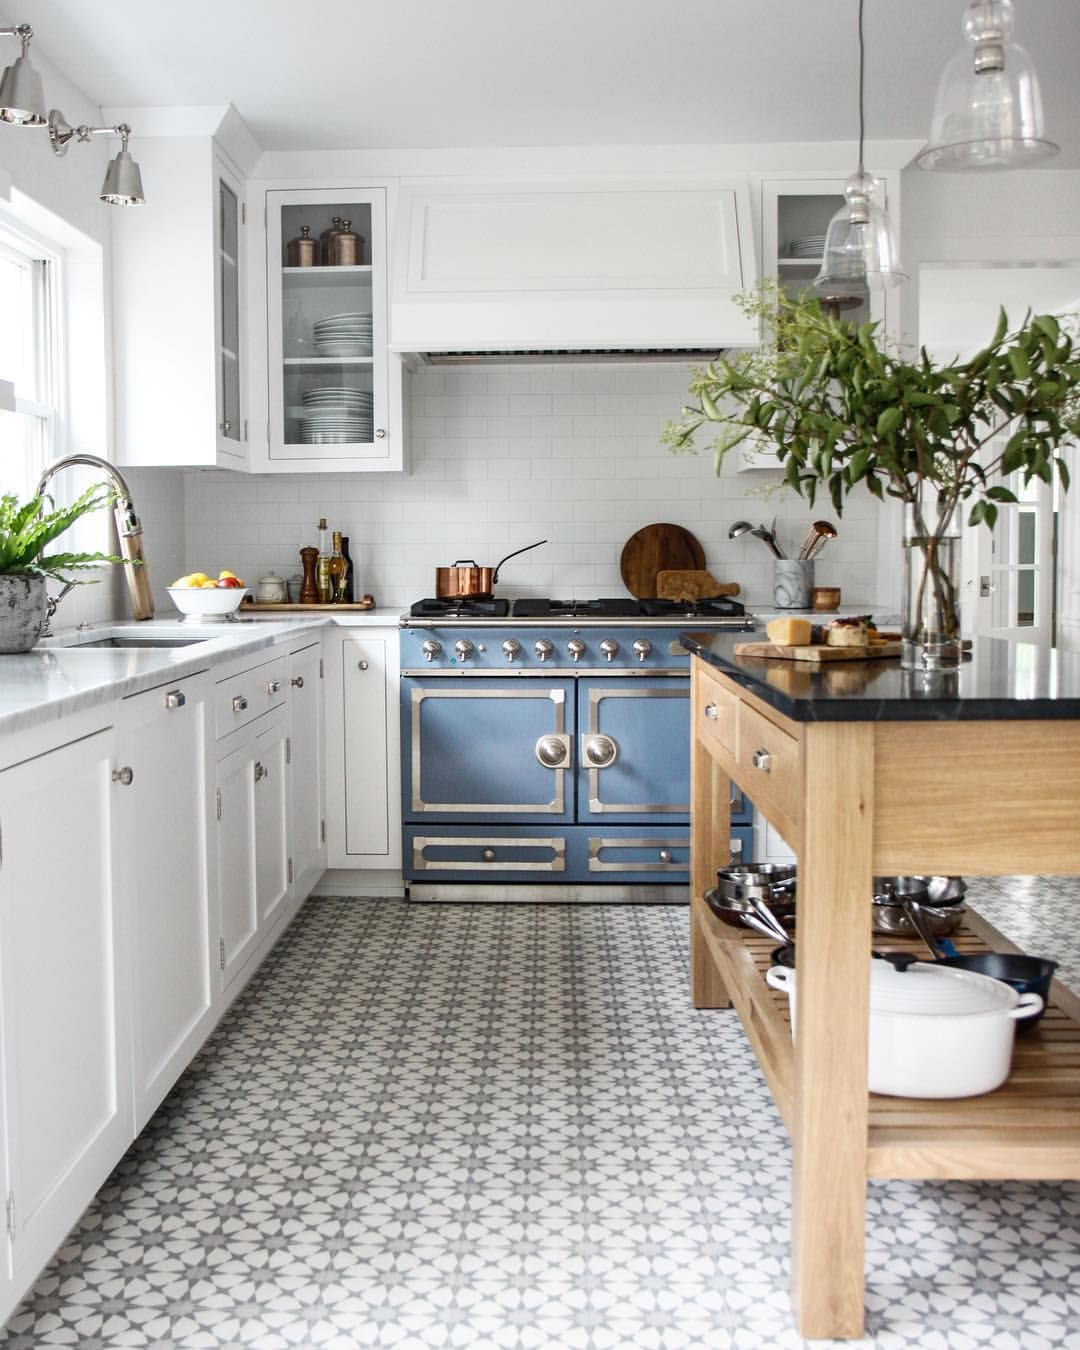 White Kitchen French Blue Stove Patterned Tile Floor Kitchen